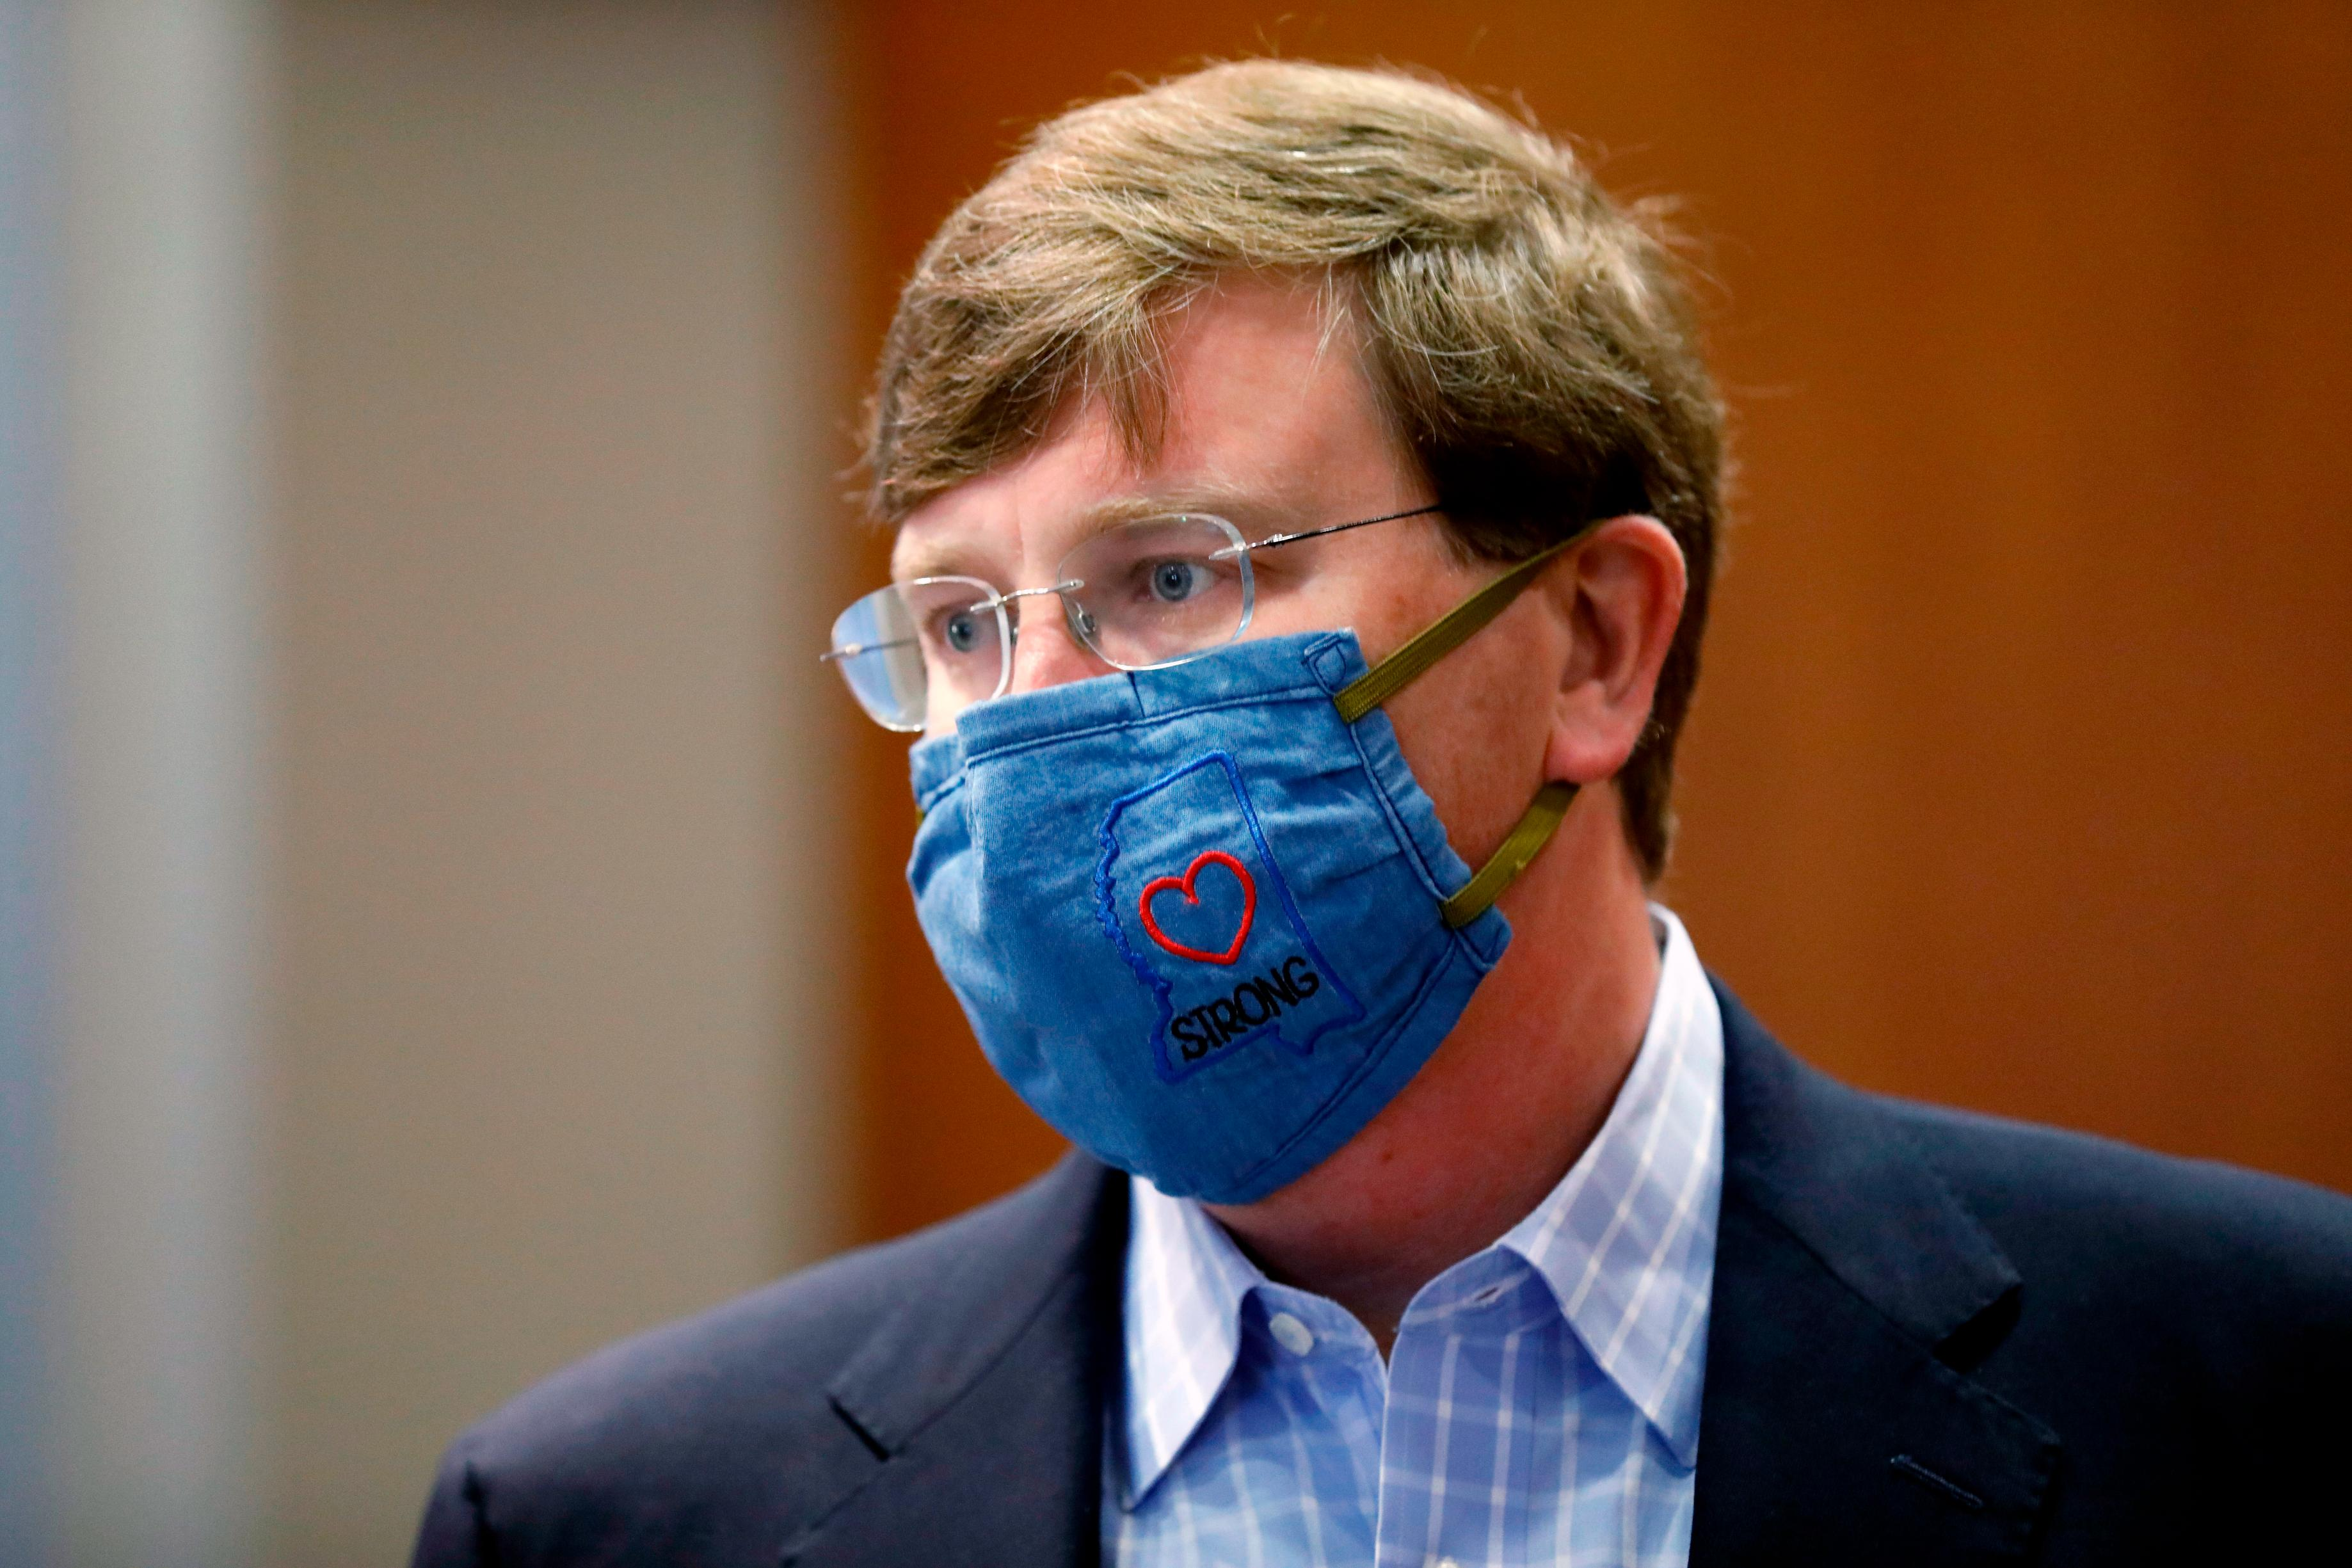 Mississippi's governor just mandated masks in public gatherings and school. The state is top 5 for coronavirus cases per capita